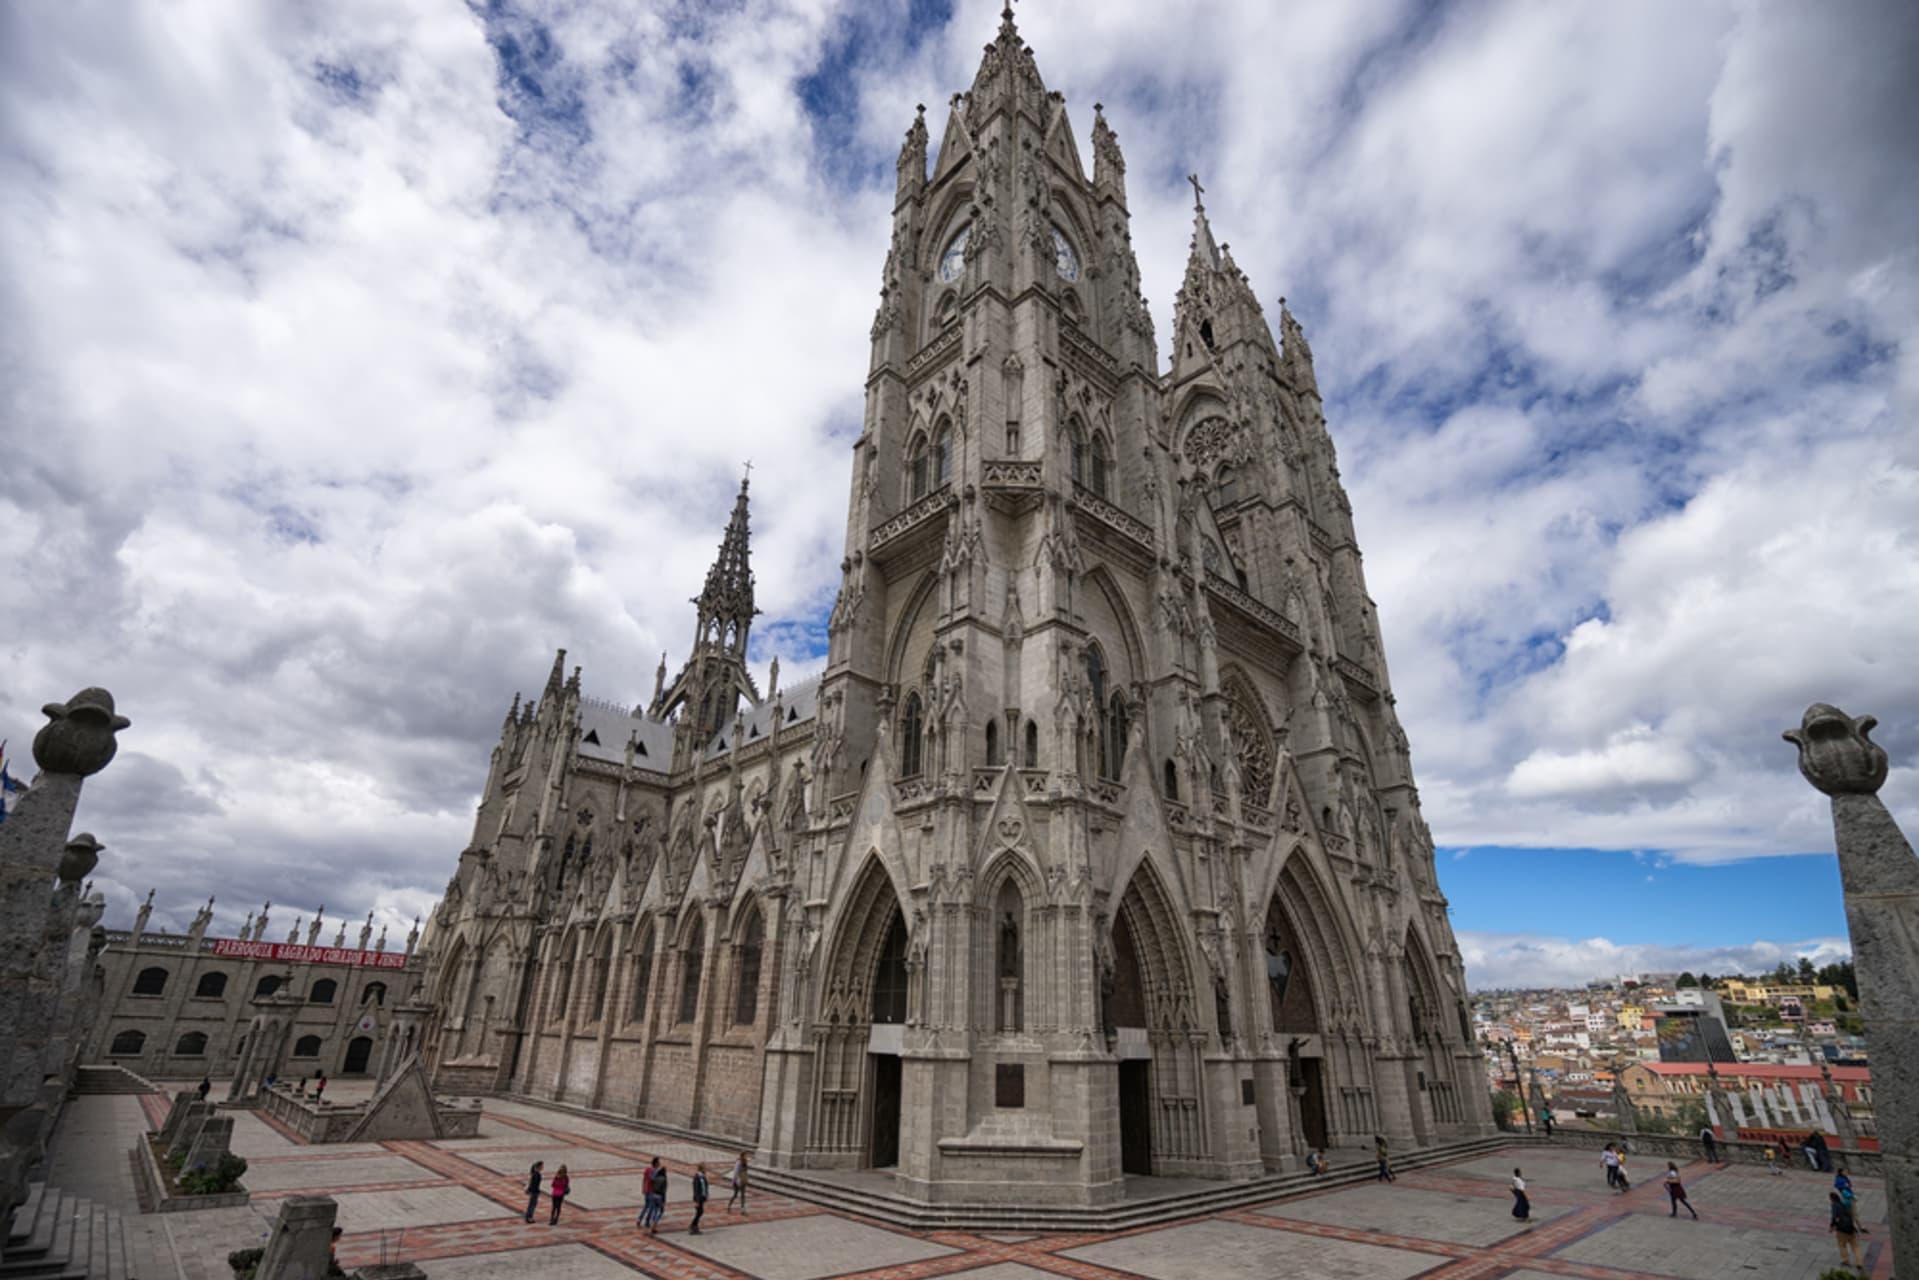 Quito - Church of The End of the World and Zoomorphic Figures